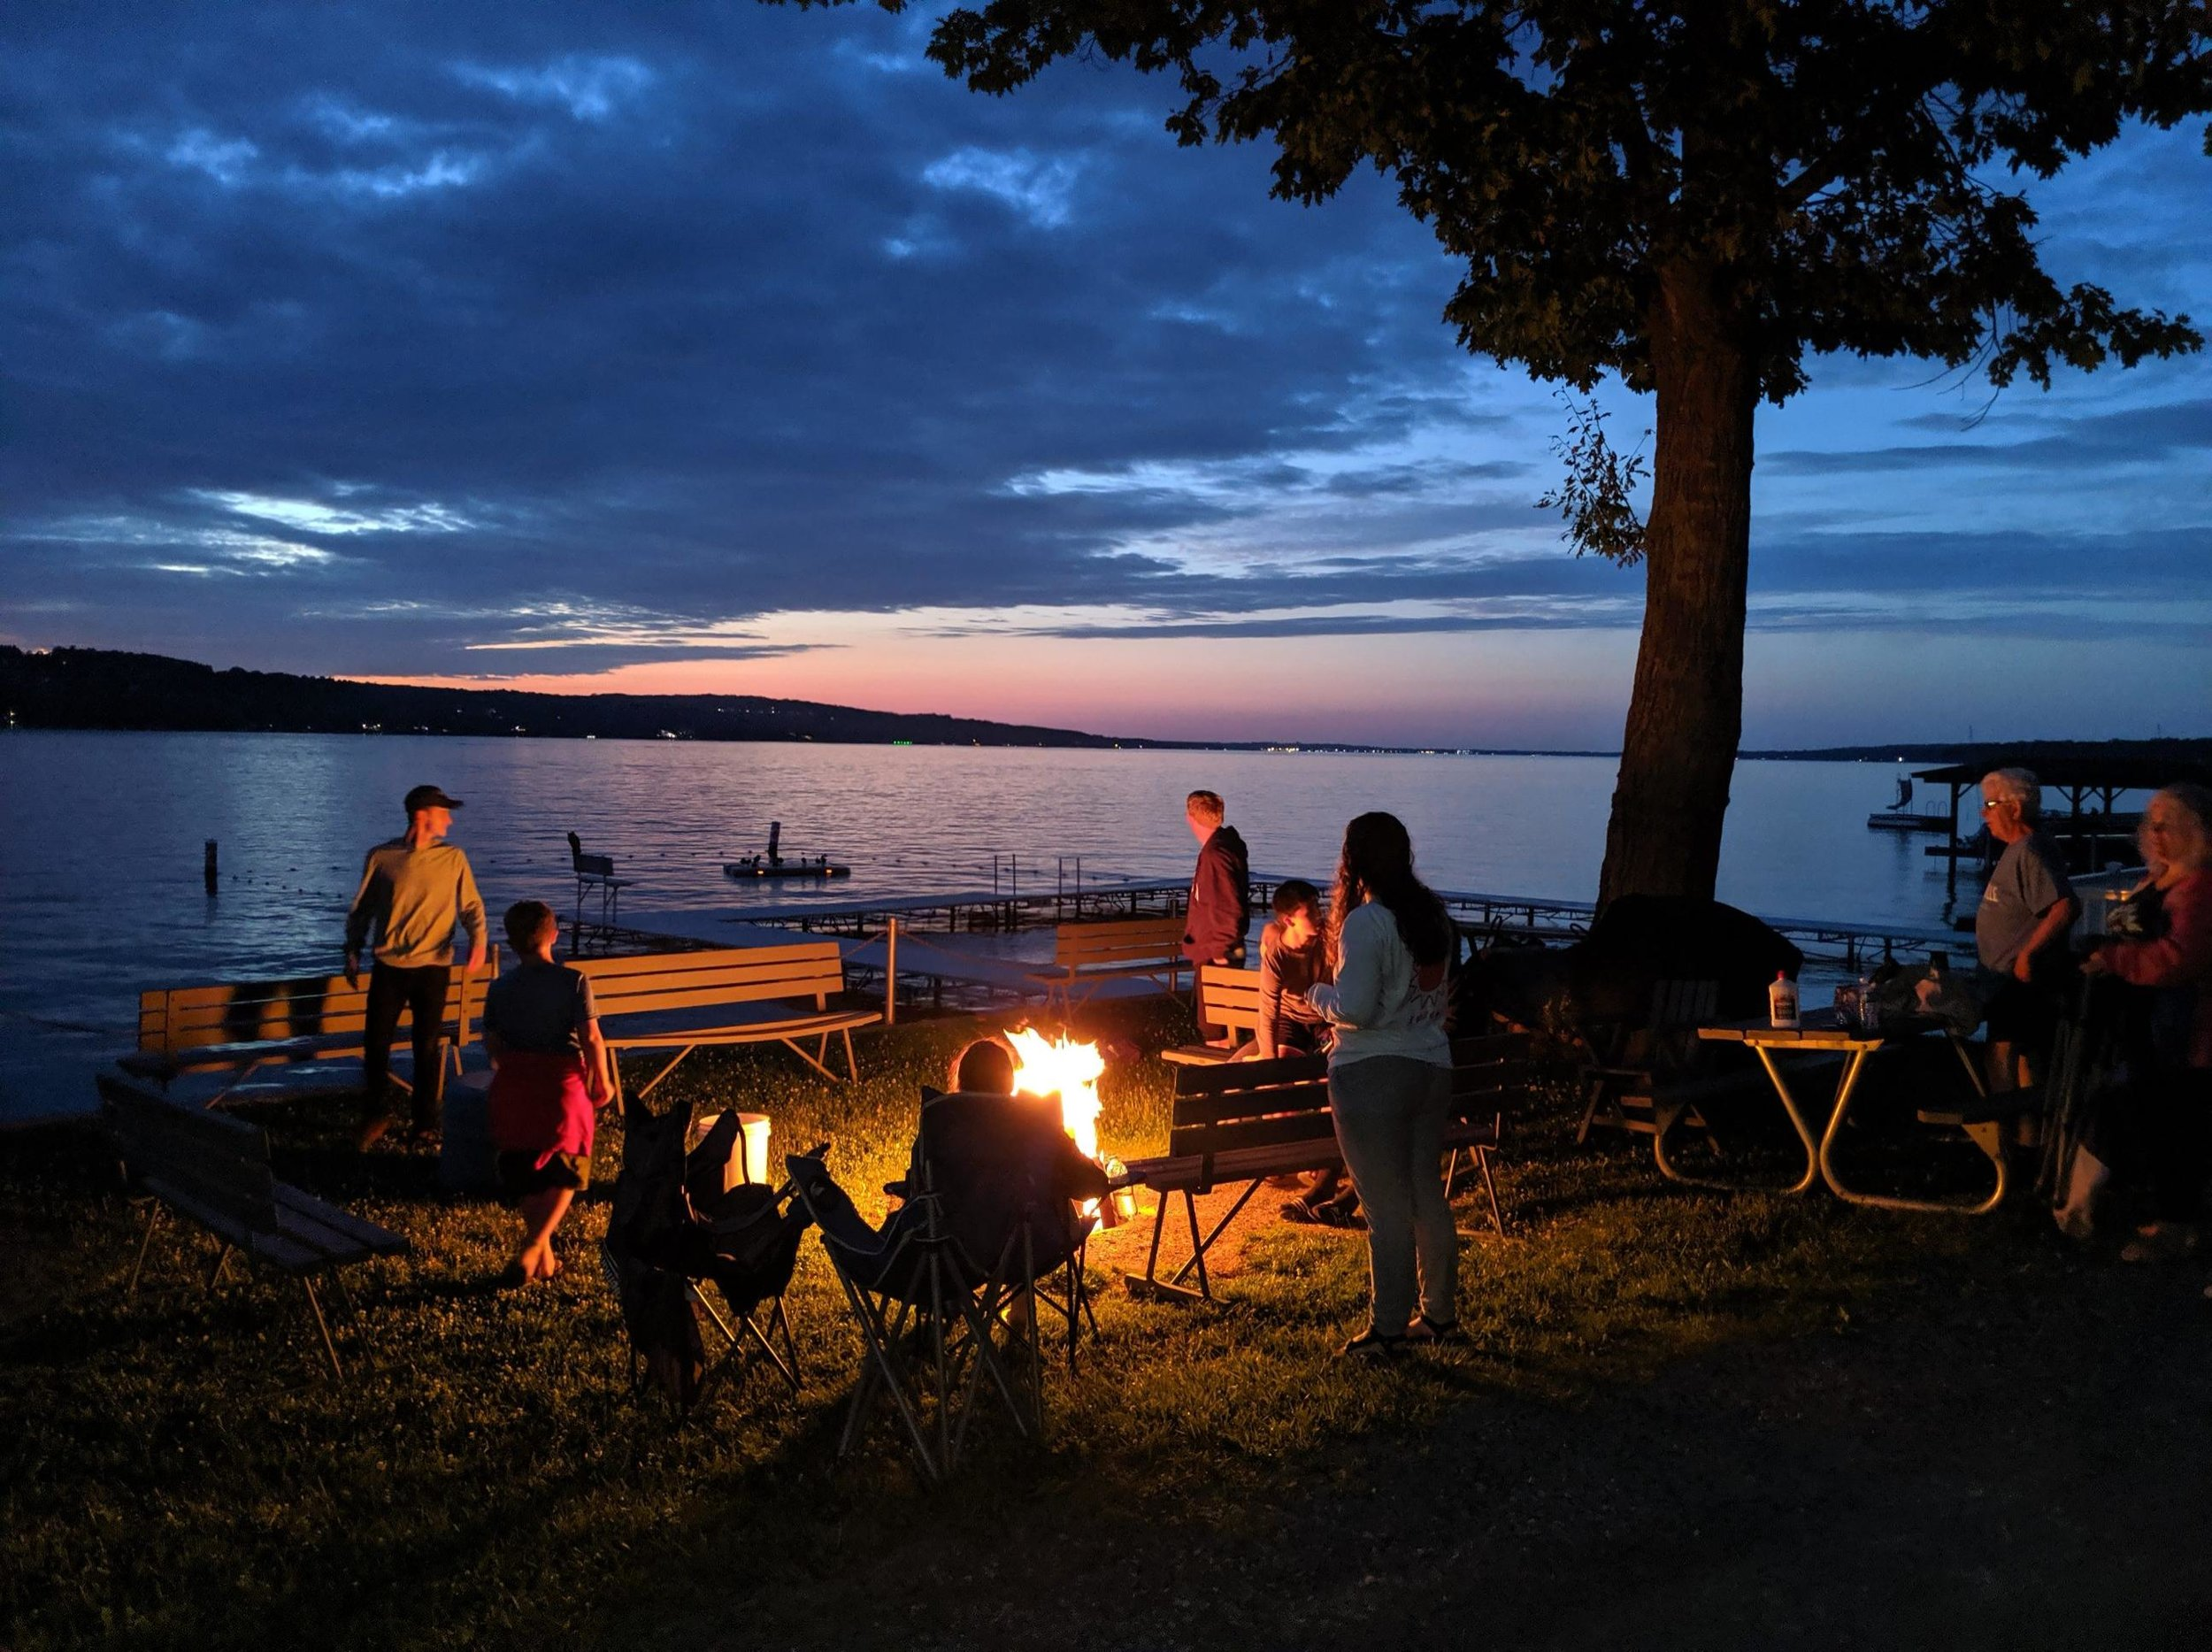 I love this photo my sister took during our annual Hill Family Vacation at LeTourneau Camp on Canandaigua Lake in NY. Sweet moments.